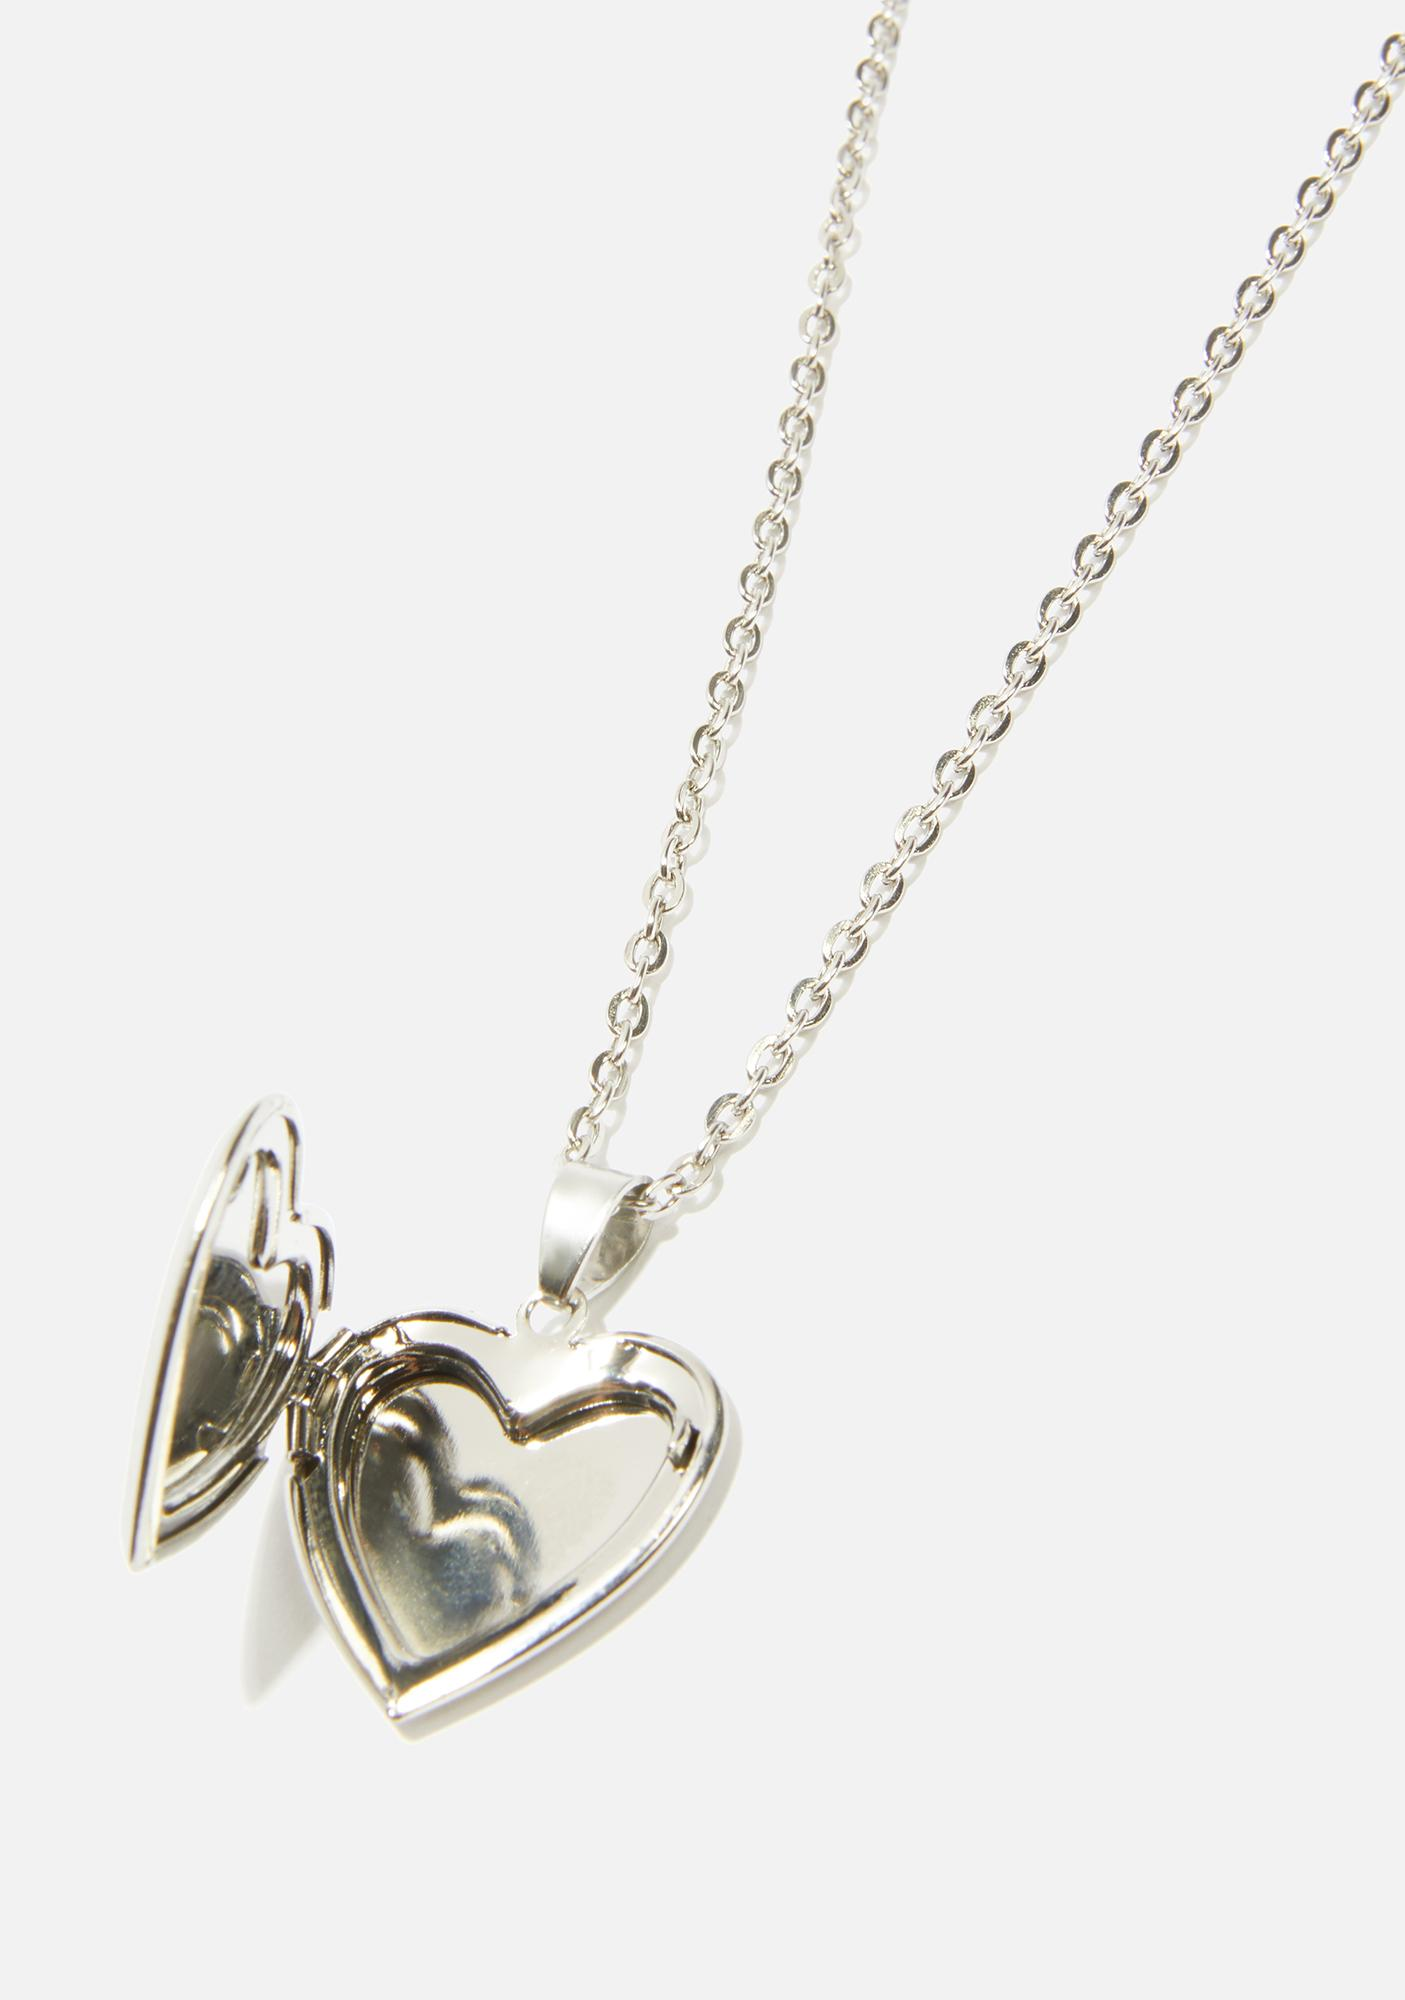 Wandering Heart Mood Changing Necklace